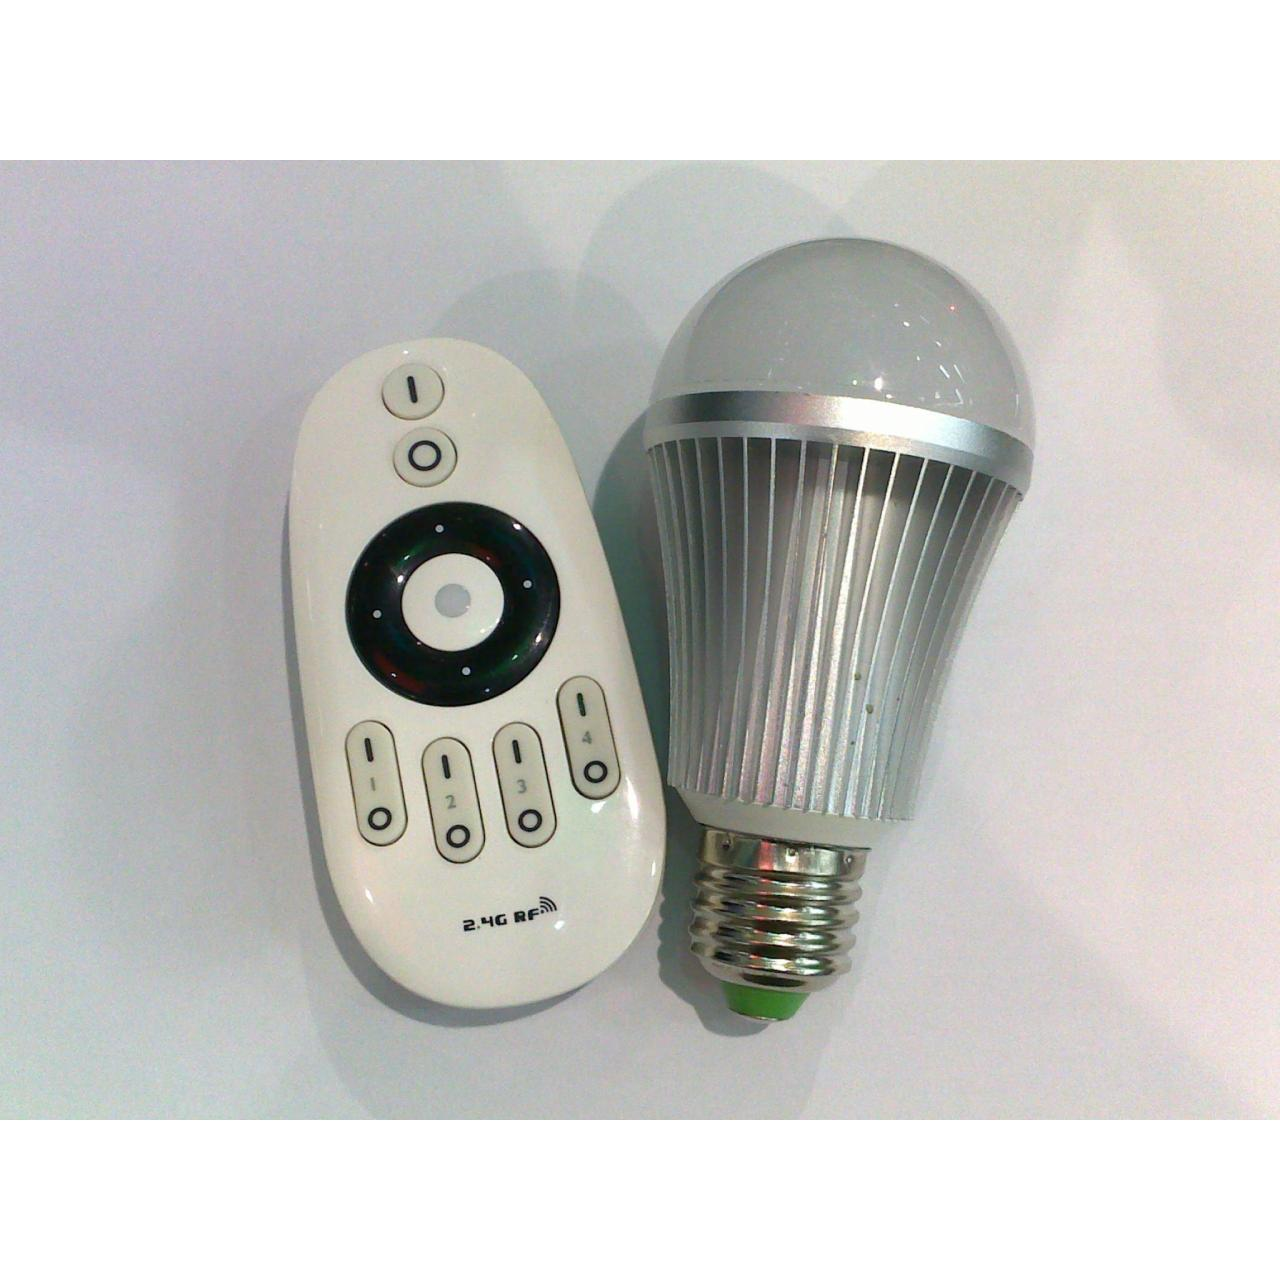 2.4G RF 7W Bulb Light LEDBulbs